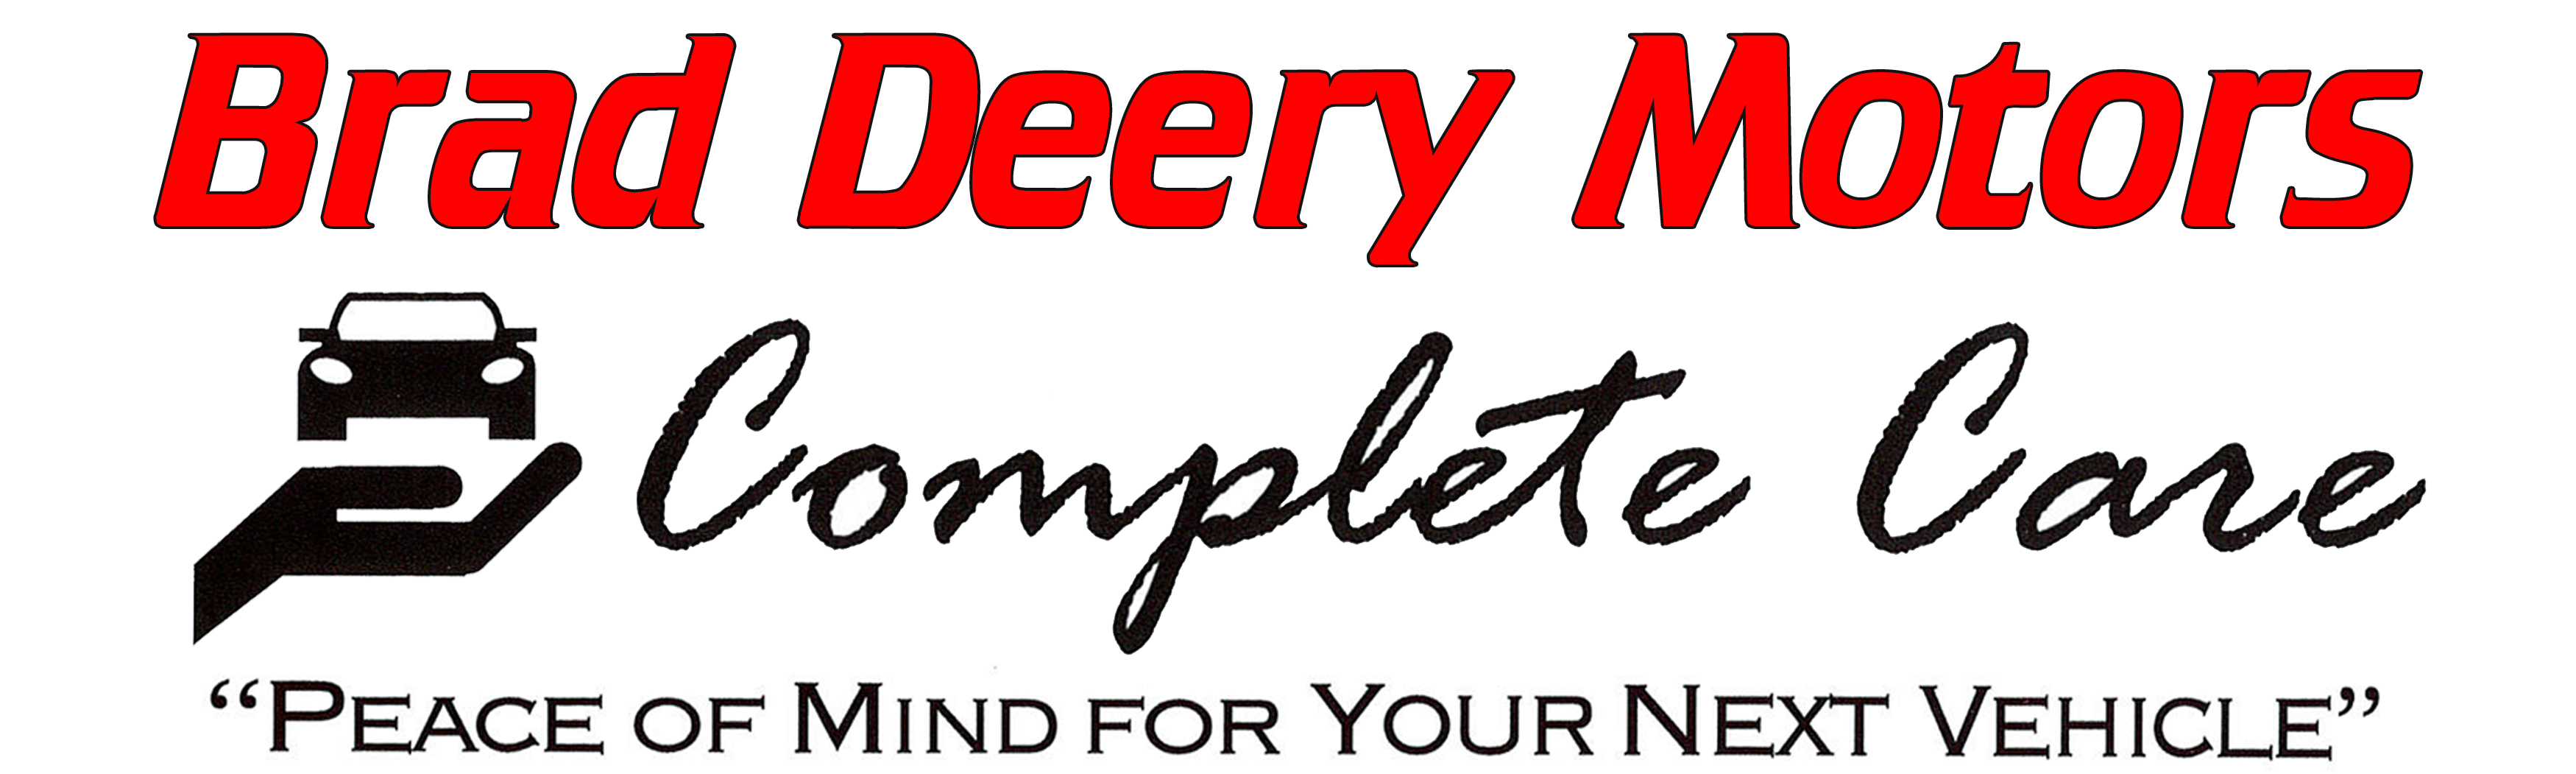 Complete Vehicle Care Maquoketa Ia At Brad Deery Motors